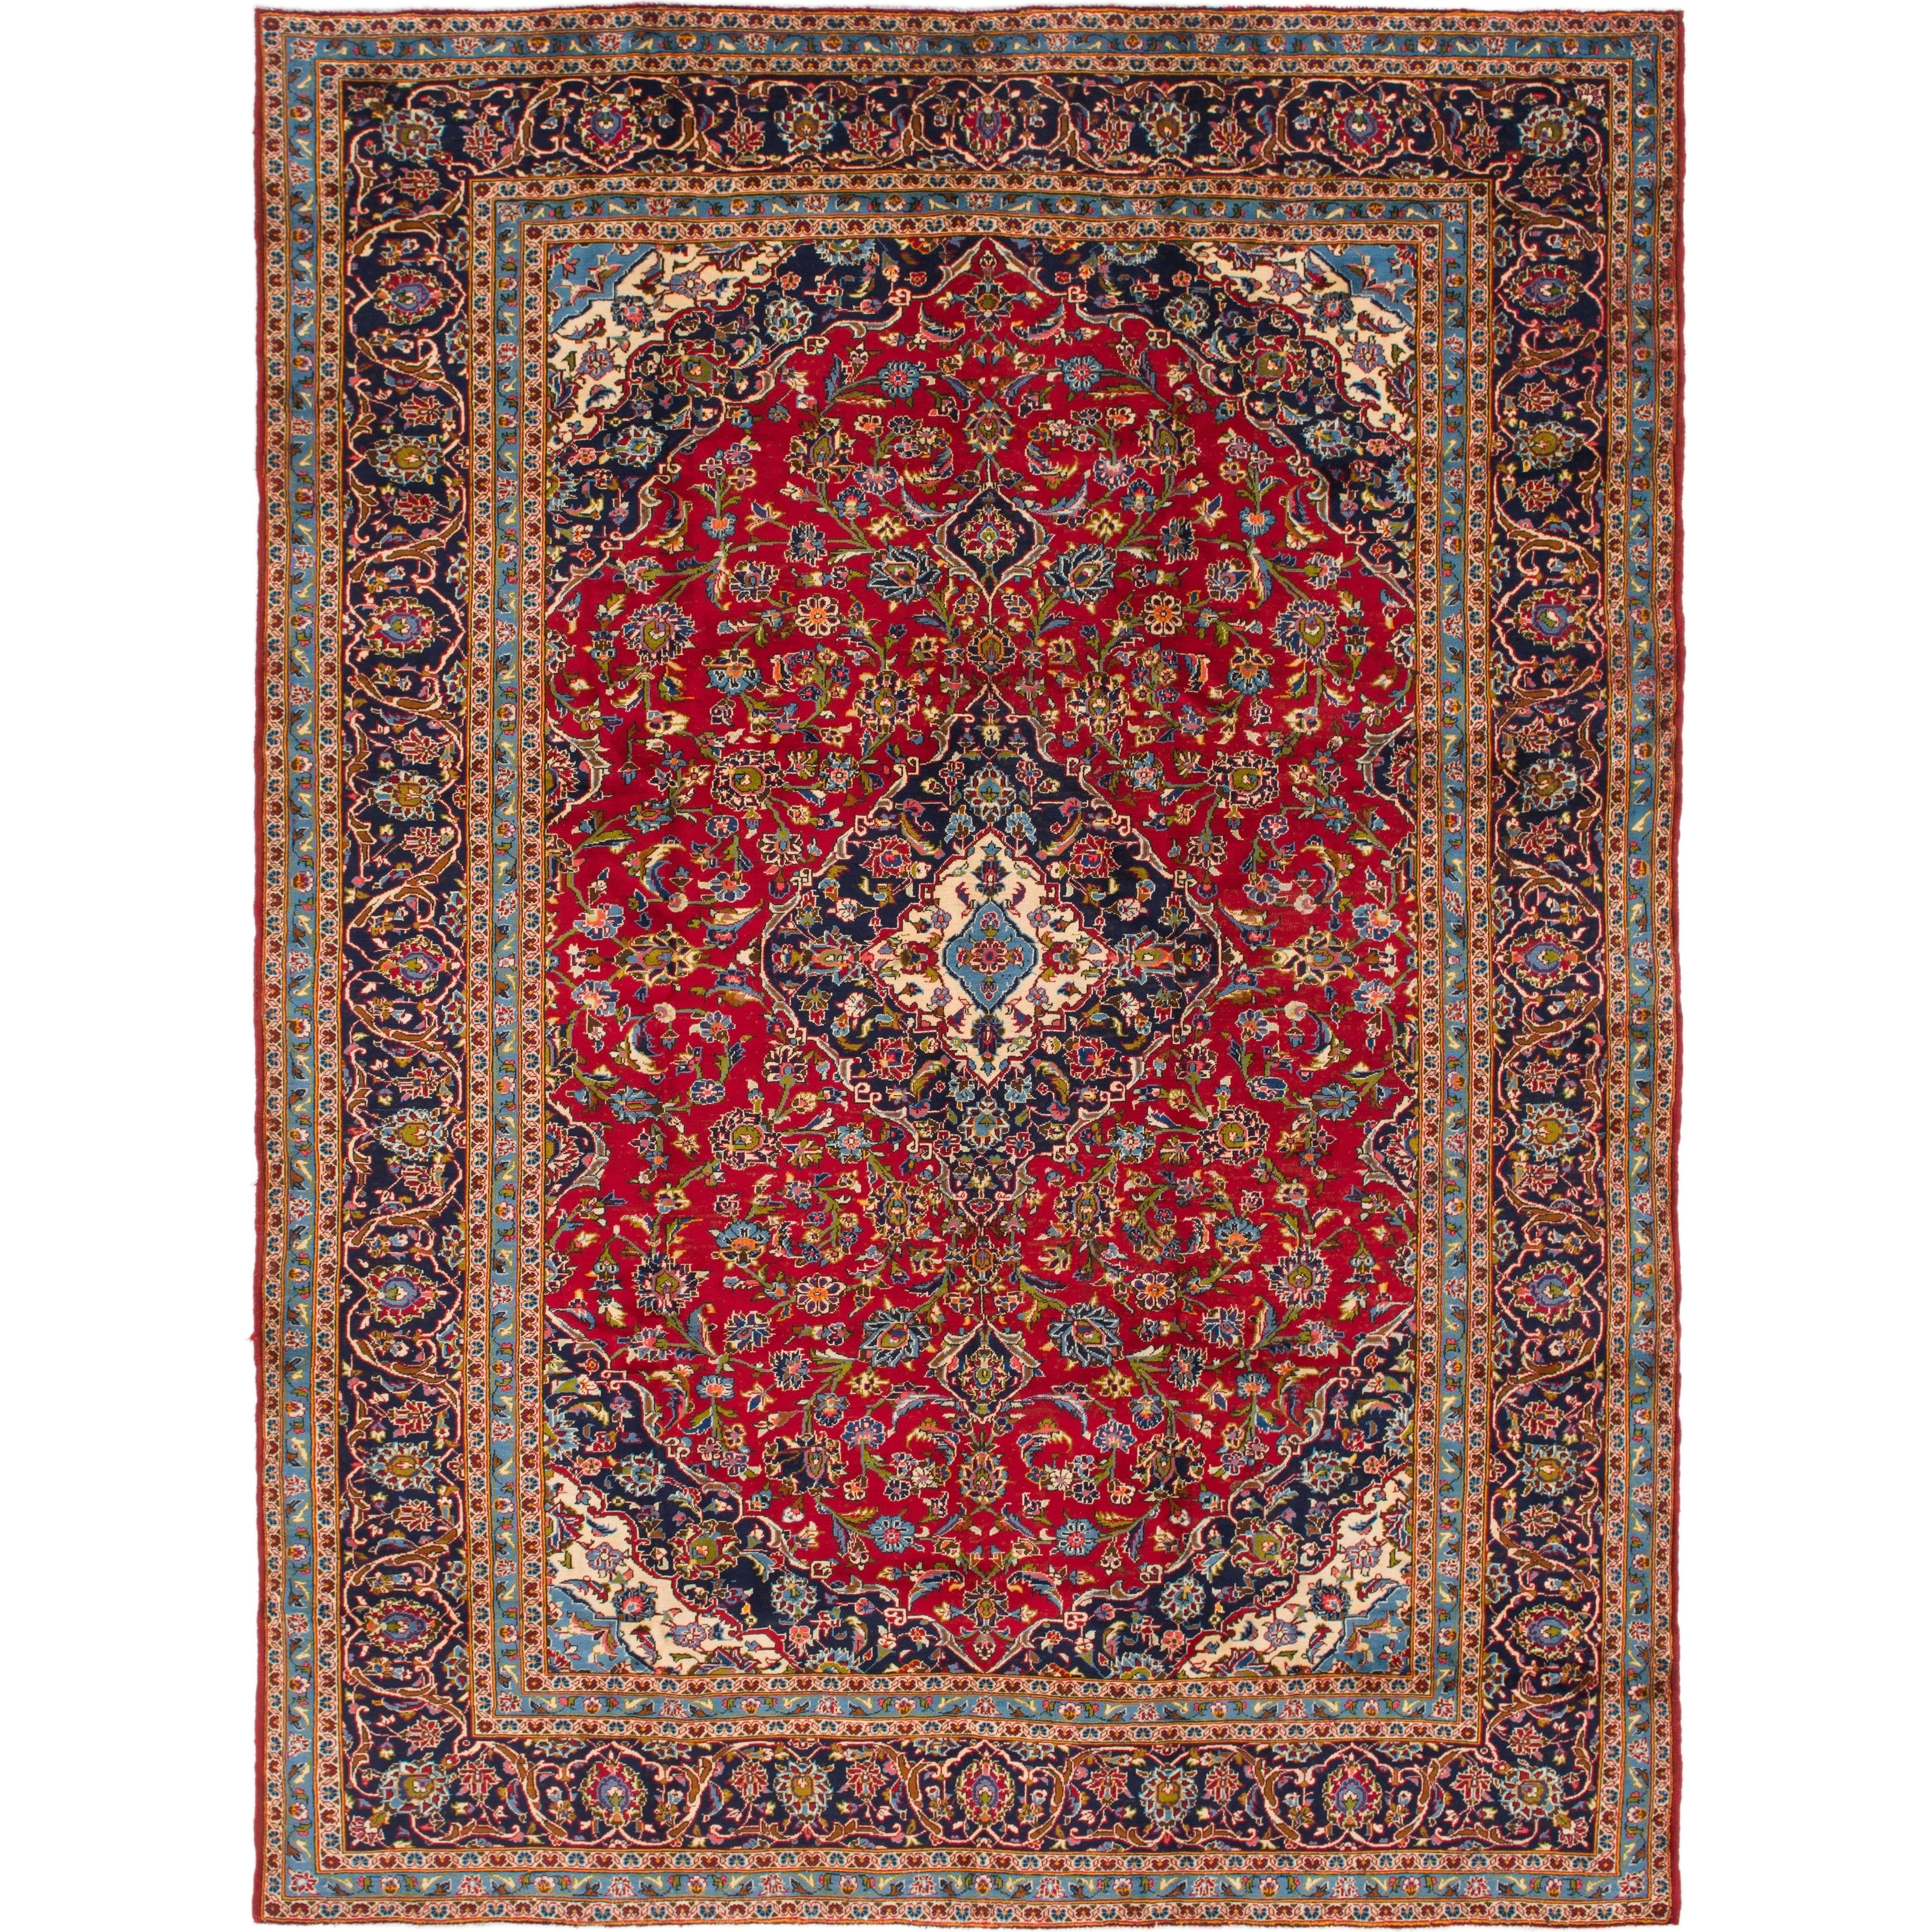 Hand Knotted Kashan Semi Antique Wool Area Rug - 9 7 x 13 (Red - 9 7 x 13)